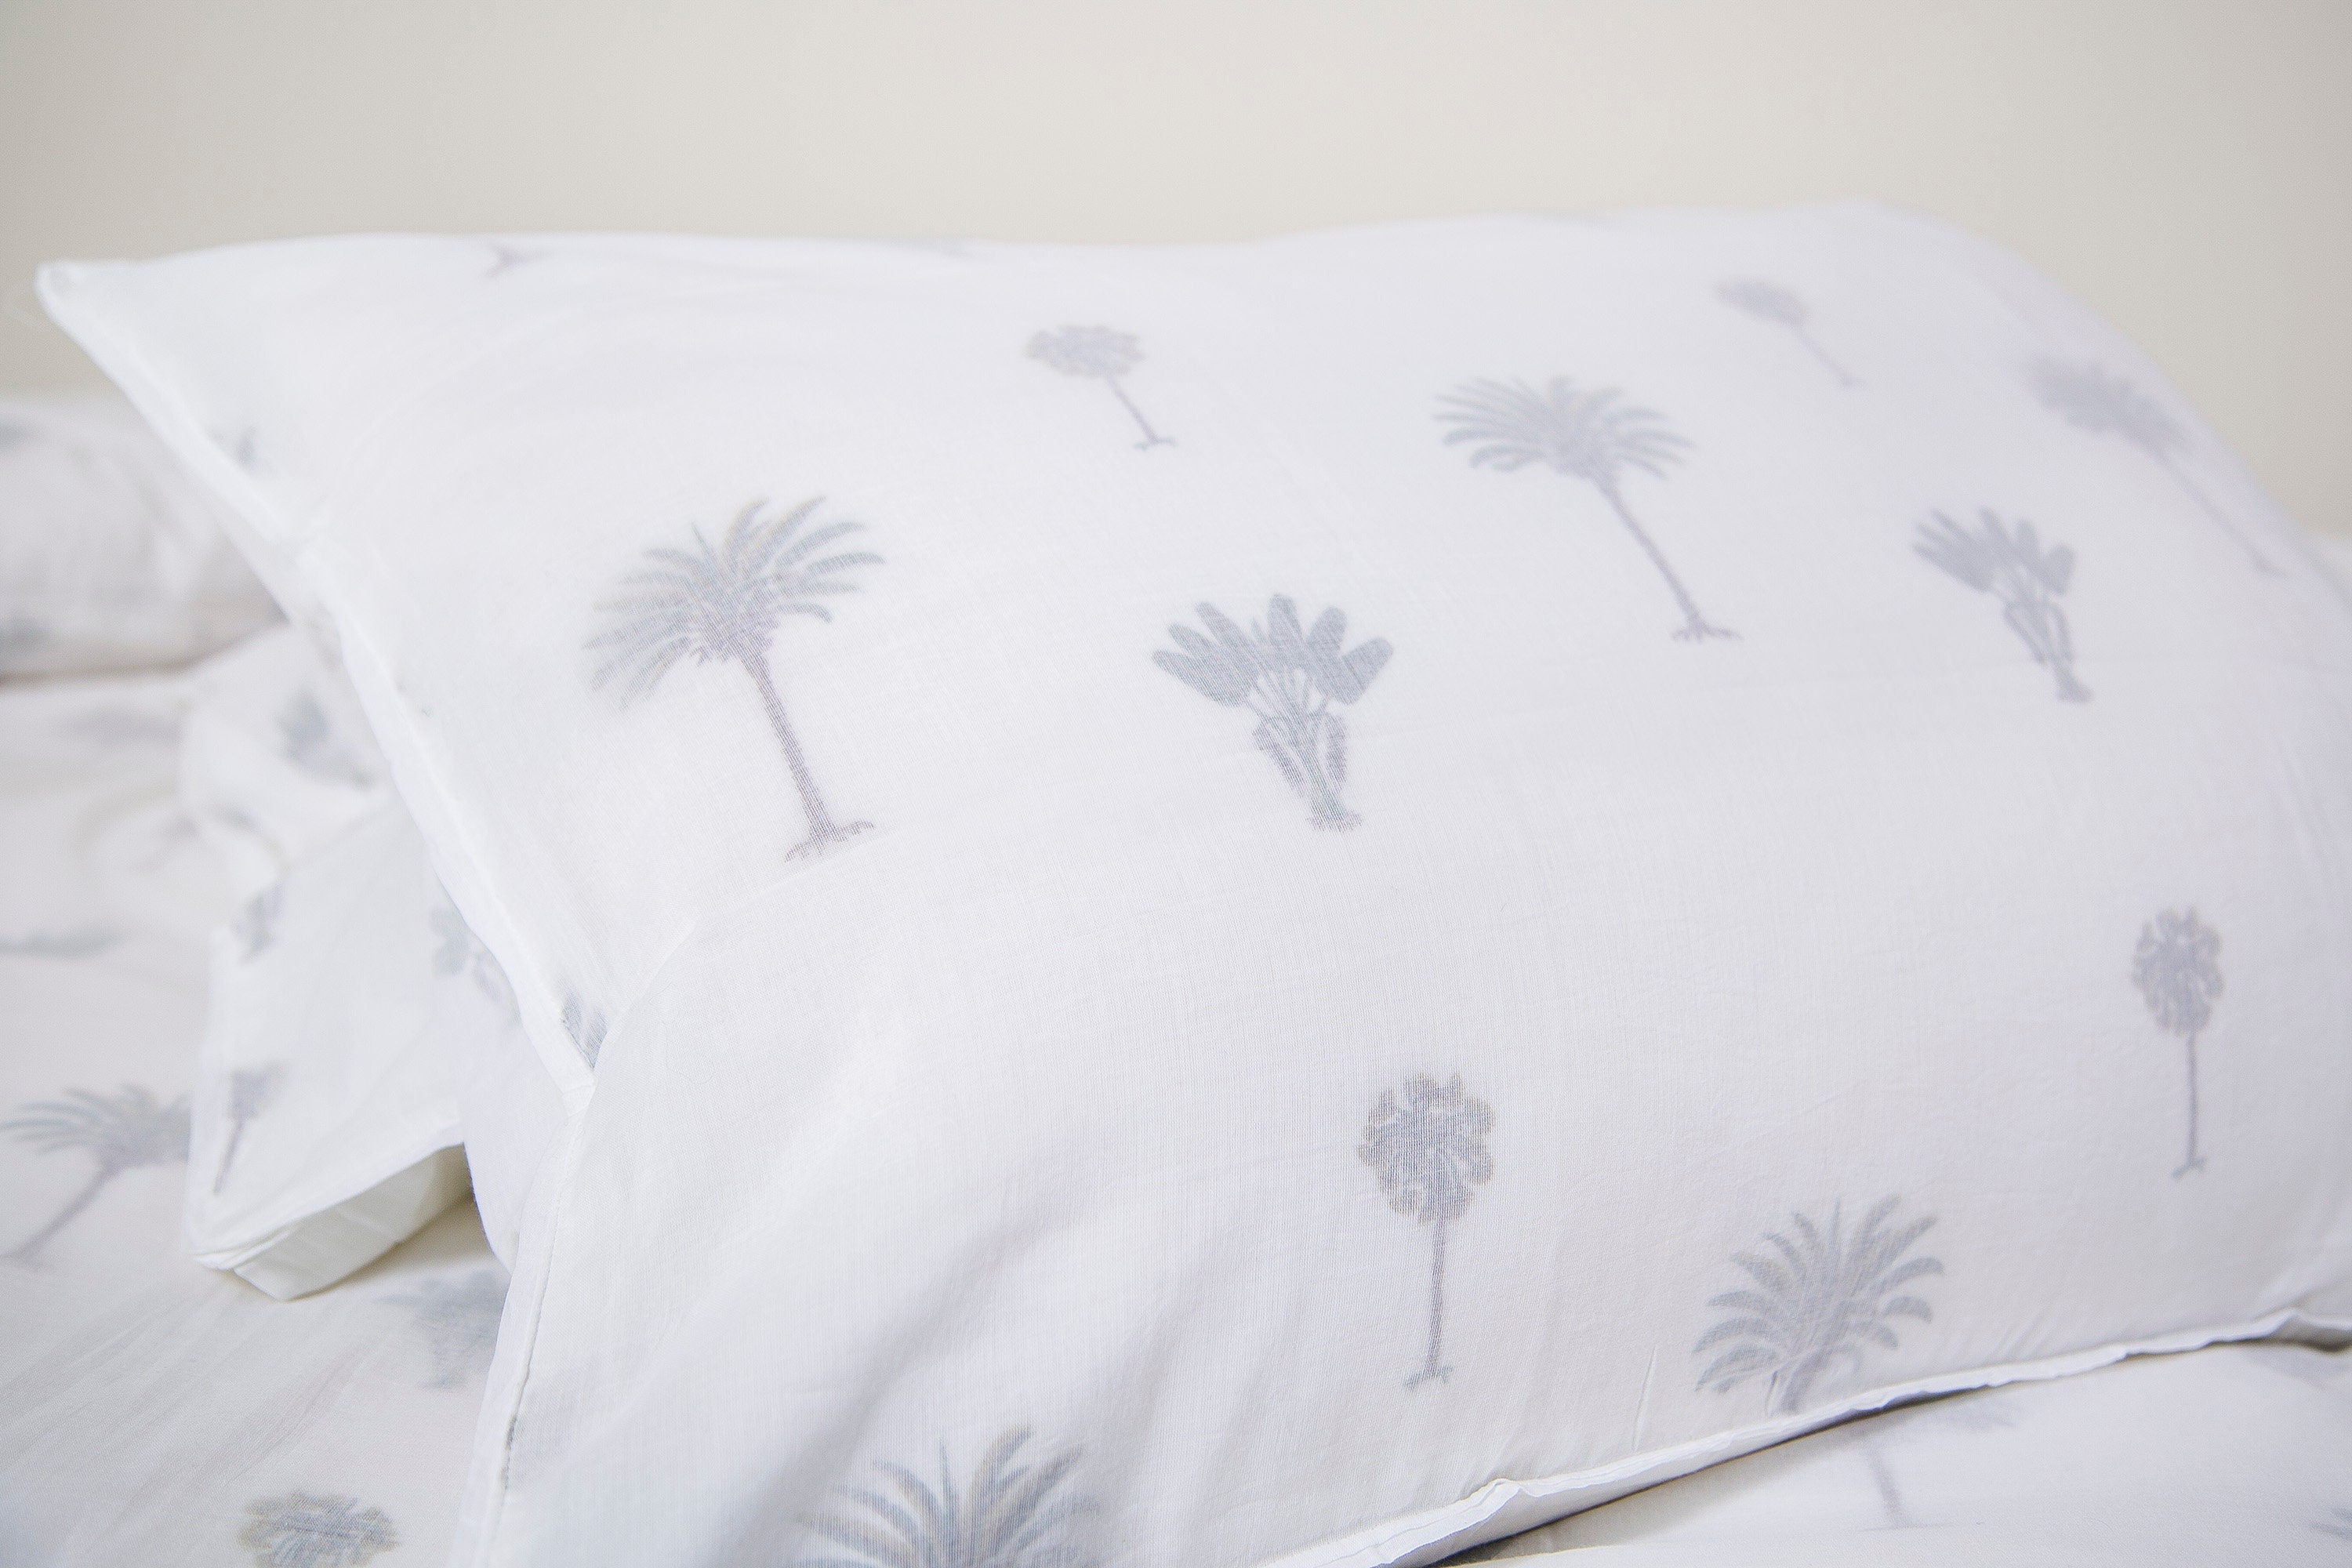 Khasto Luxury Bedding - Main made, ultra-soft Duvet Cover - Pillow Cases (Palm Print)